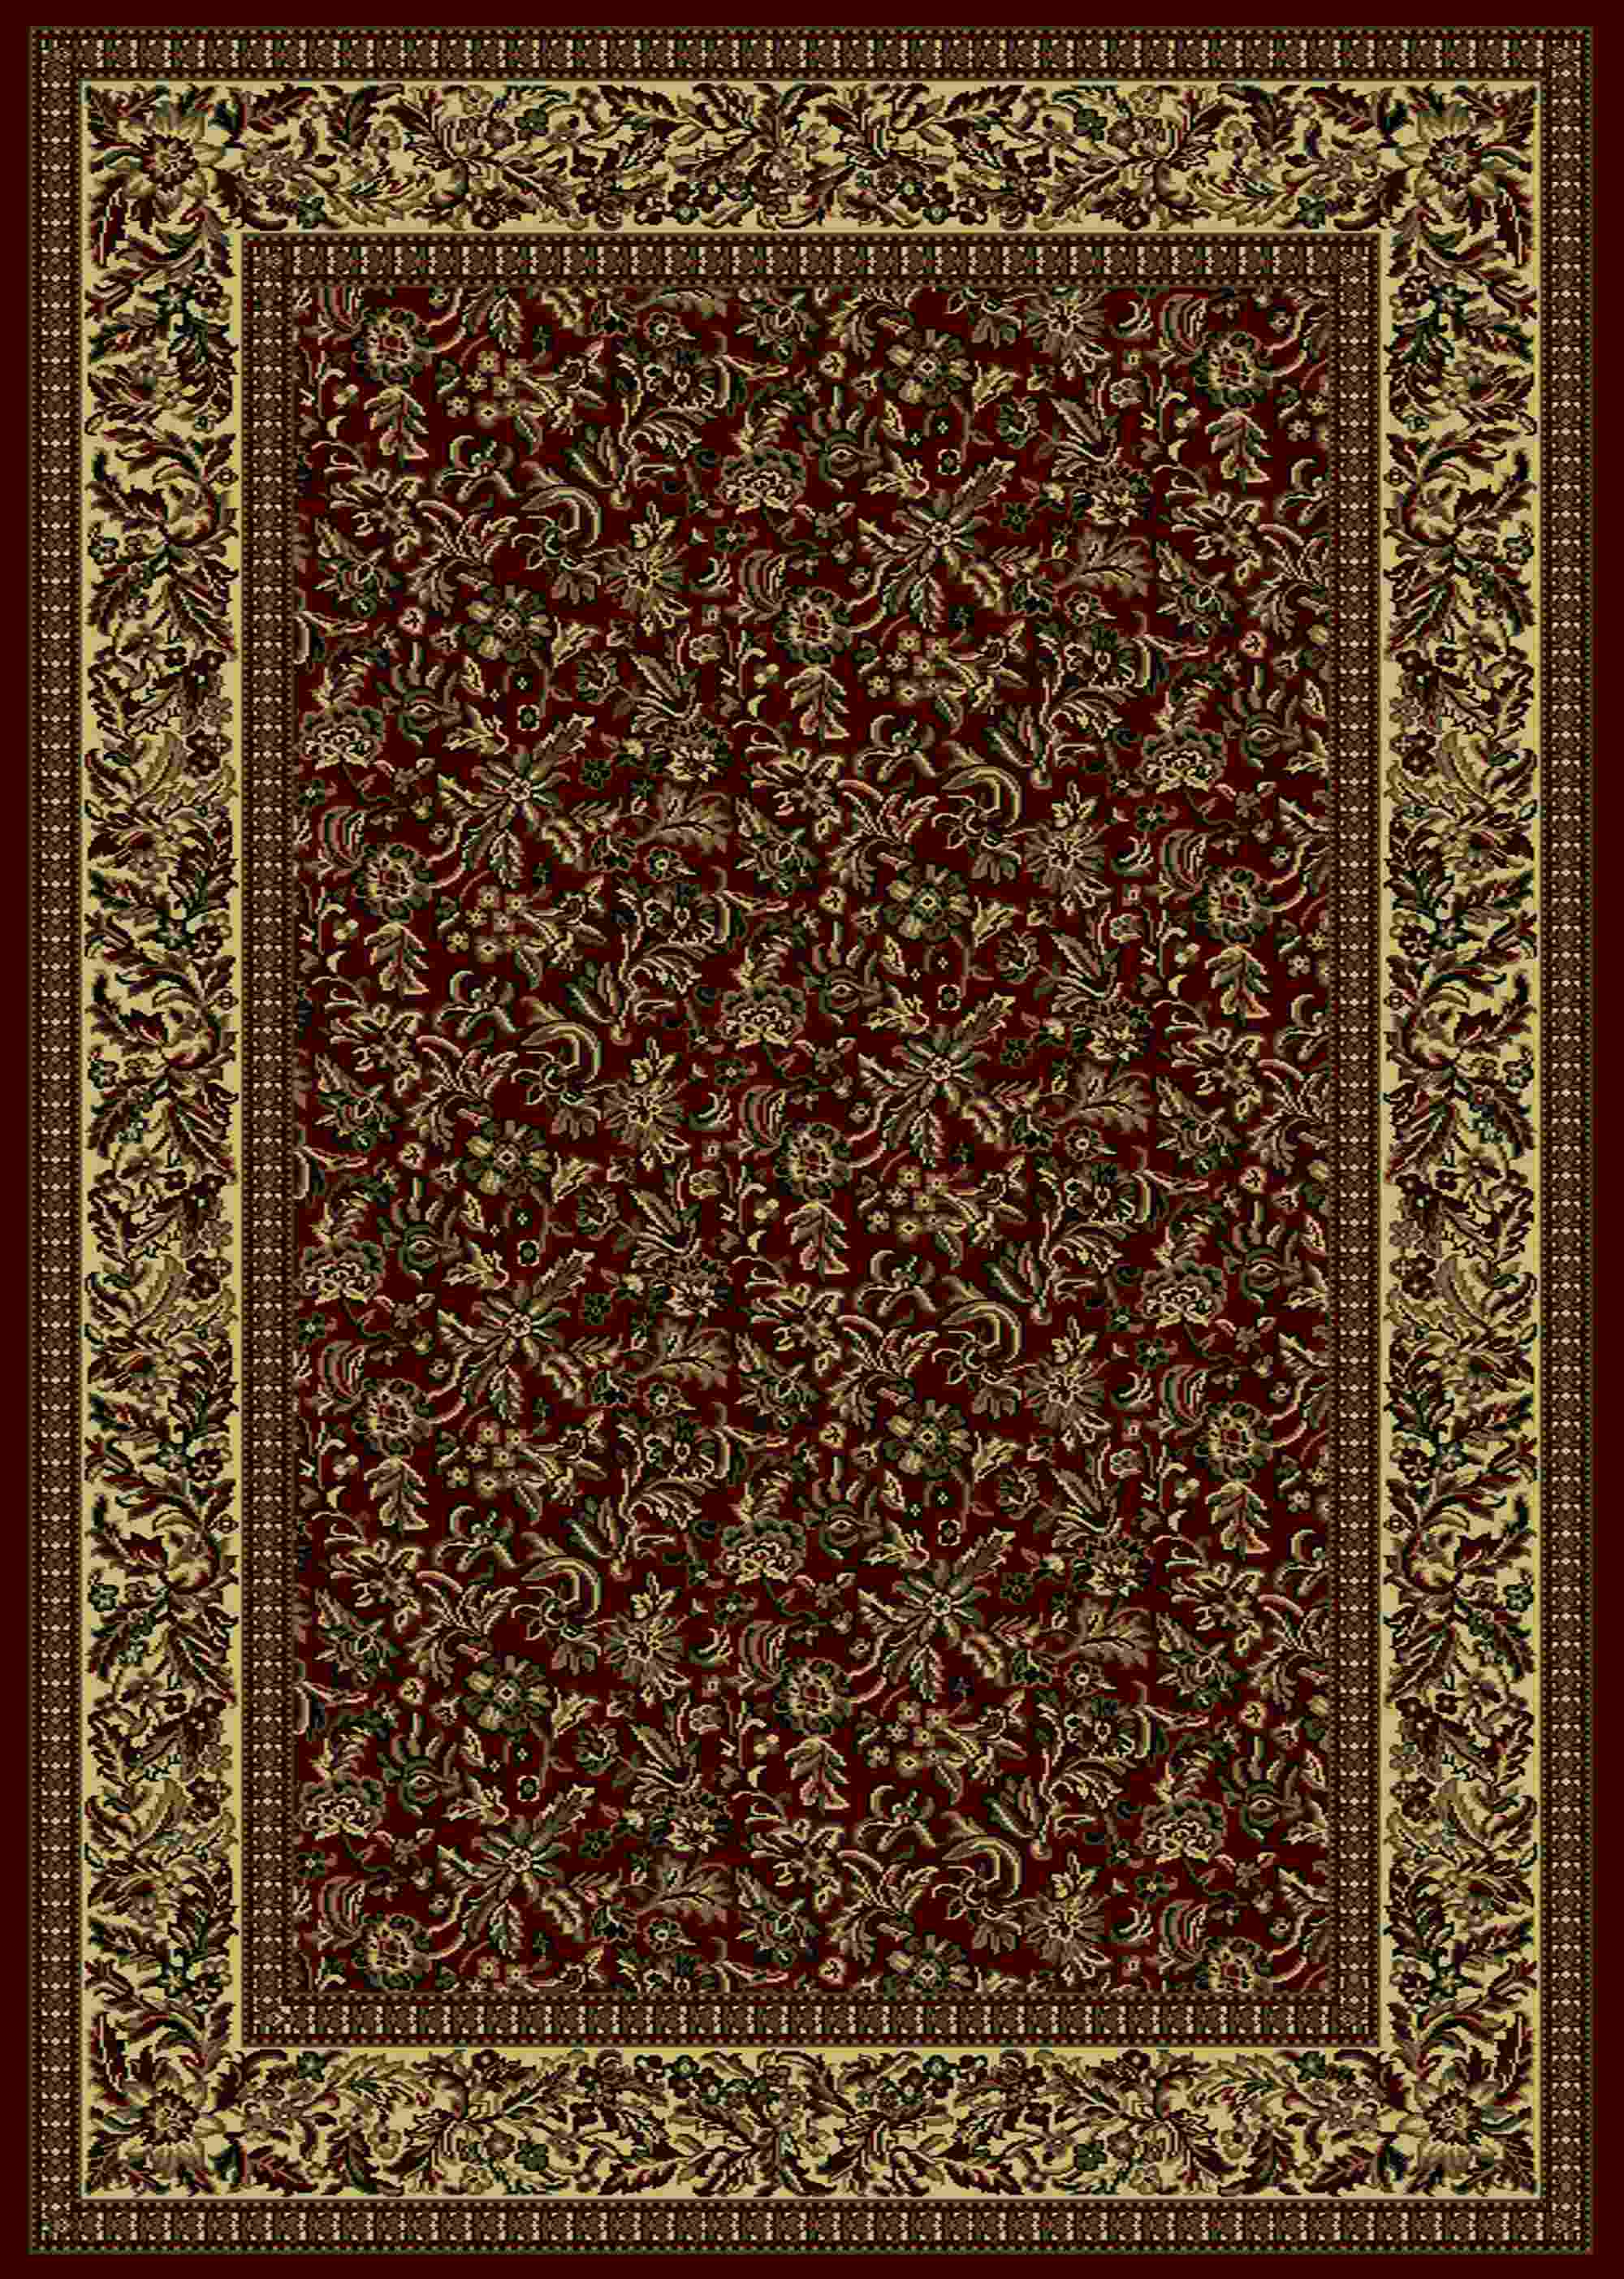 Radici Usa Castello 1219 Burgundy Traditional Area Rug